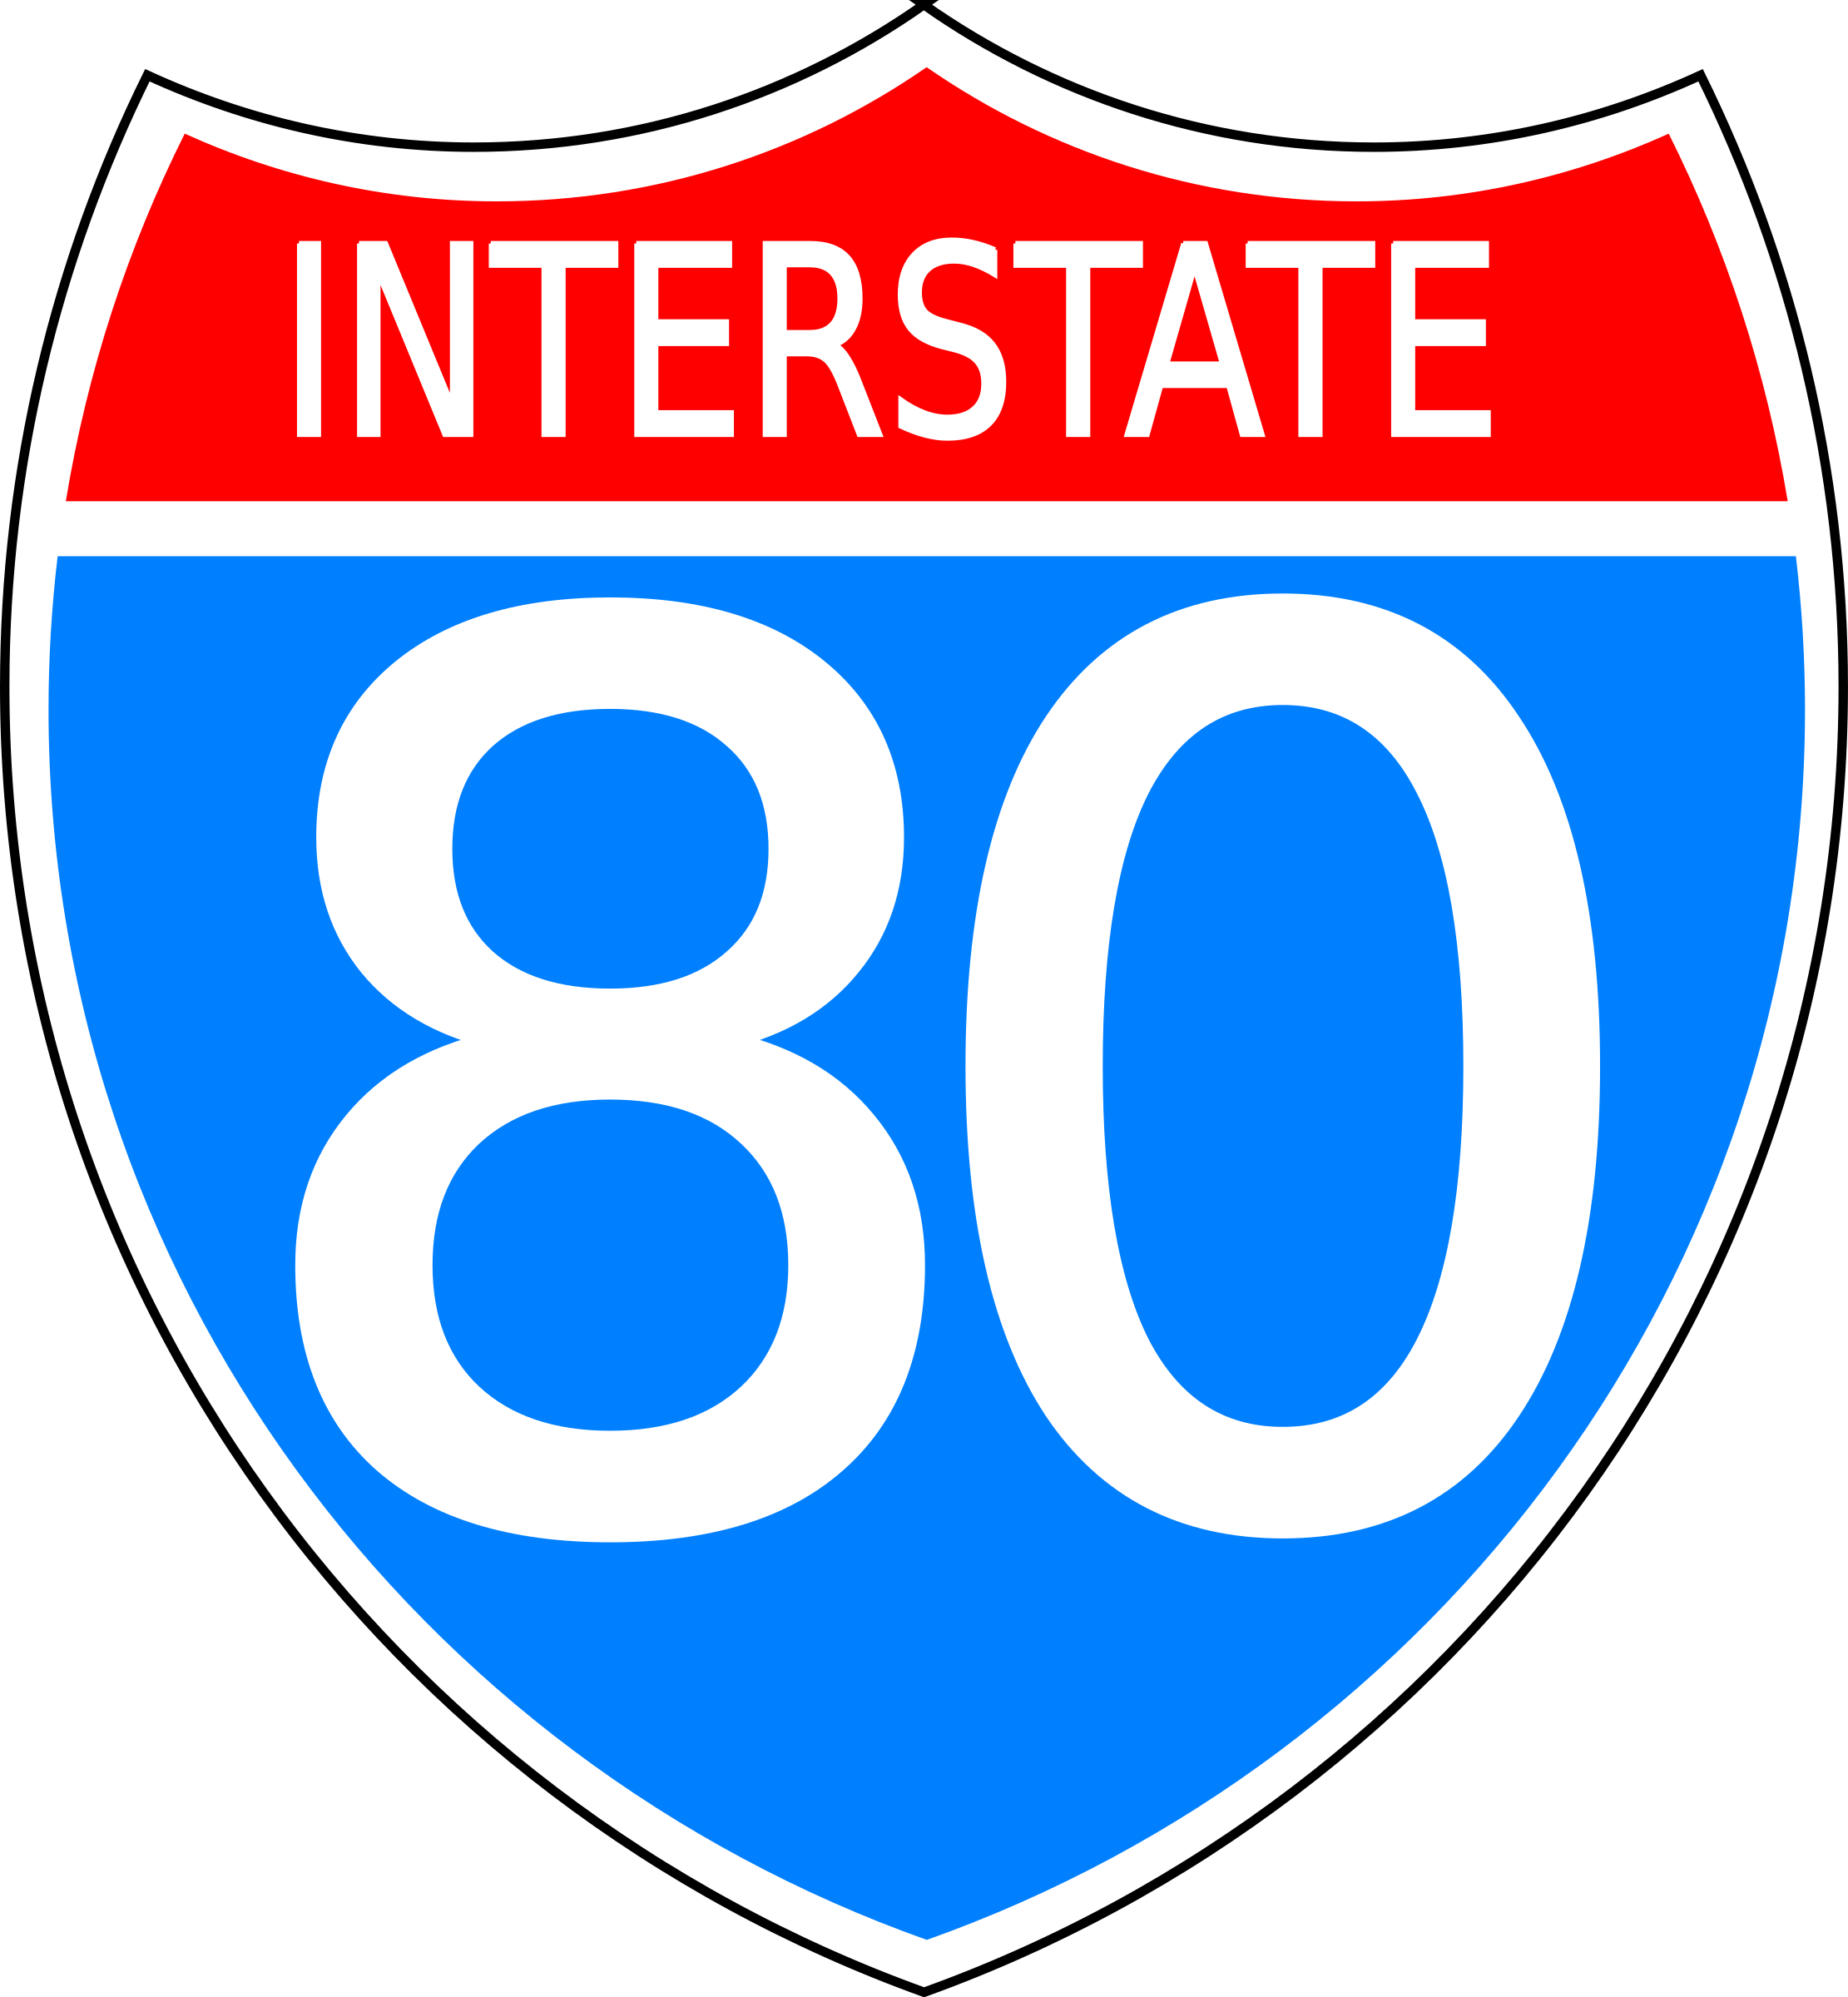 Interstate sign icons png. Highway clipart highway exit